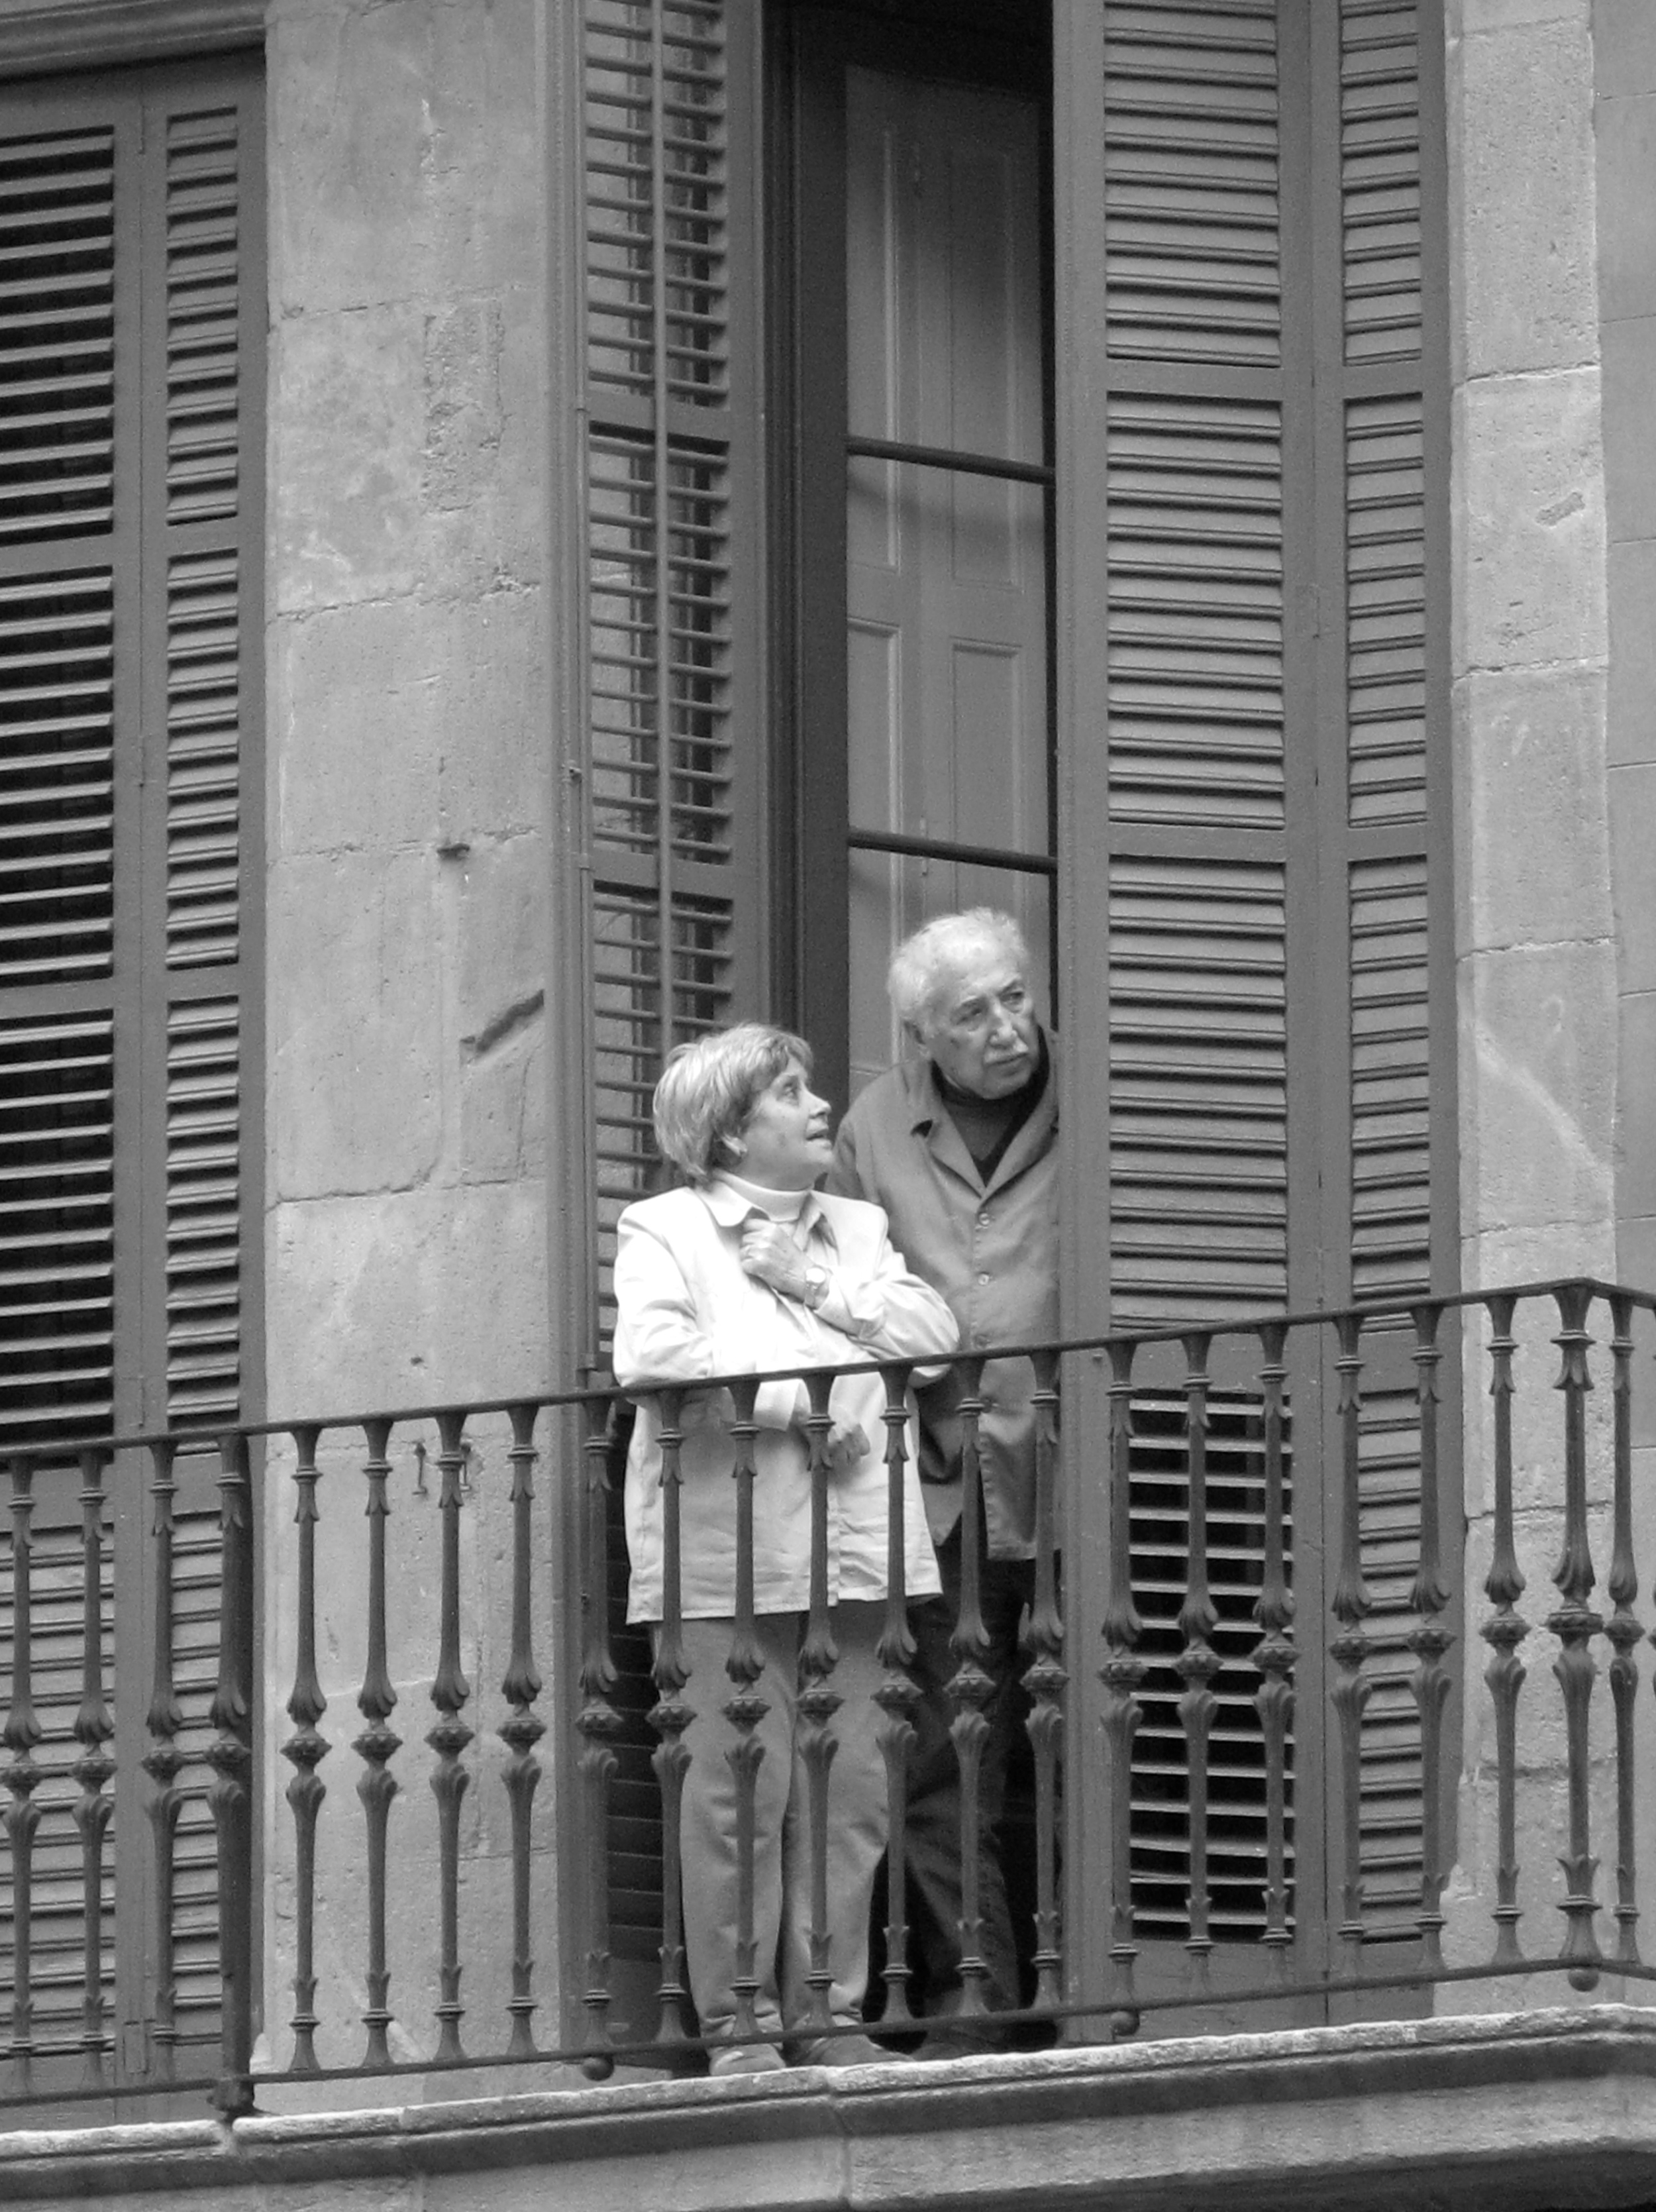 Two old people on a balcony in Barcelona, watching the street performers below.